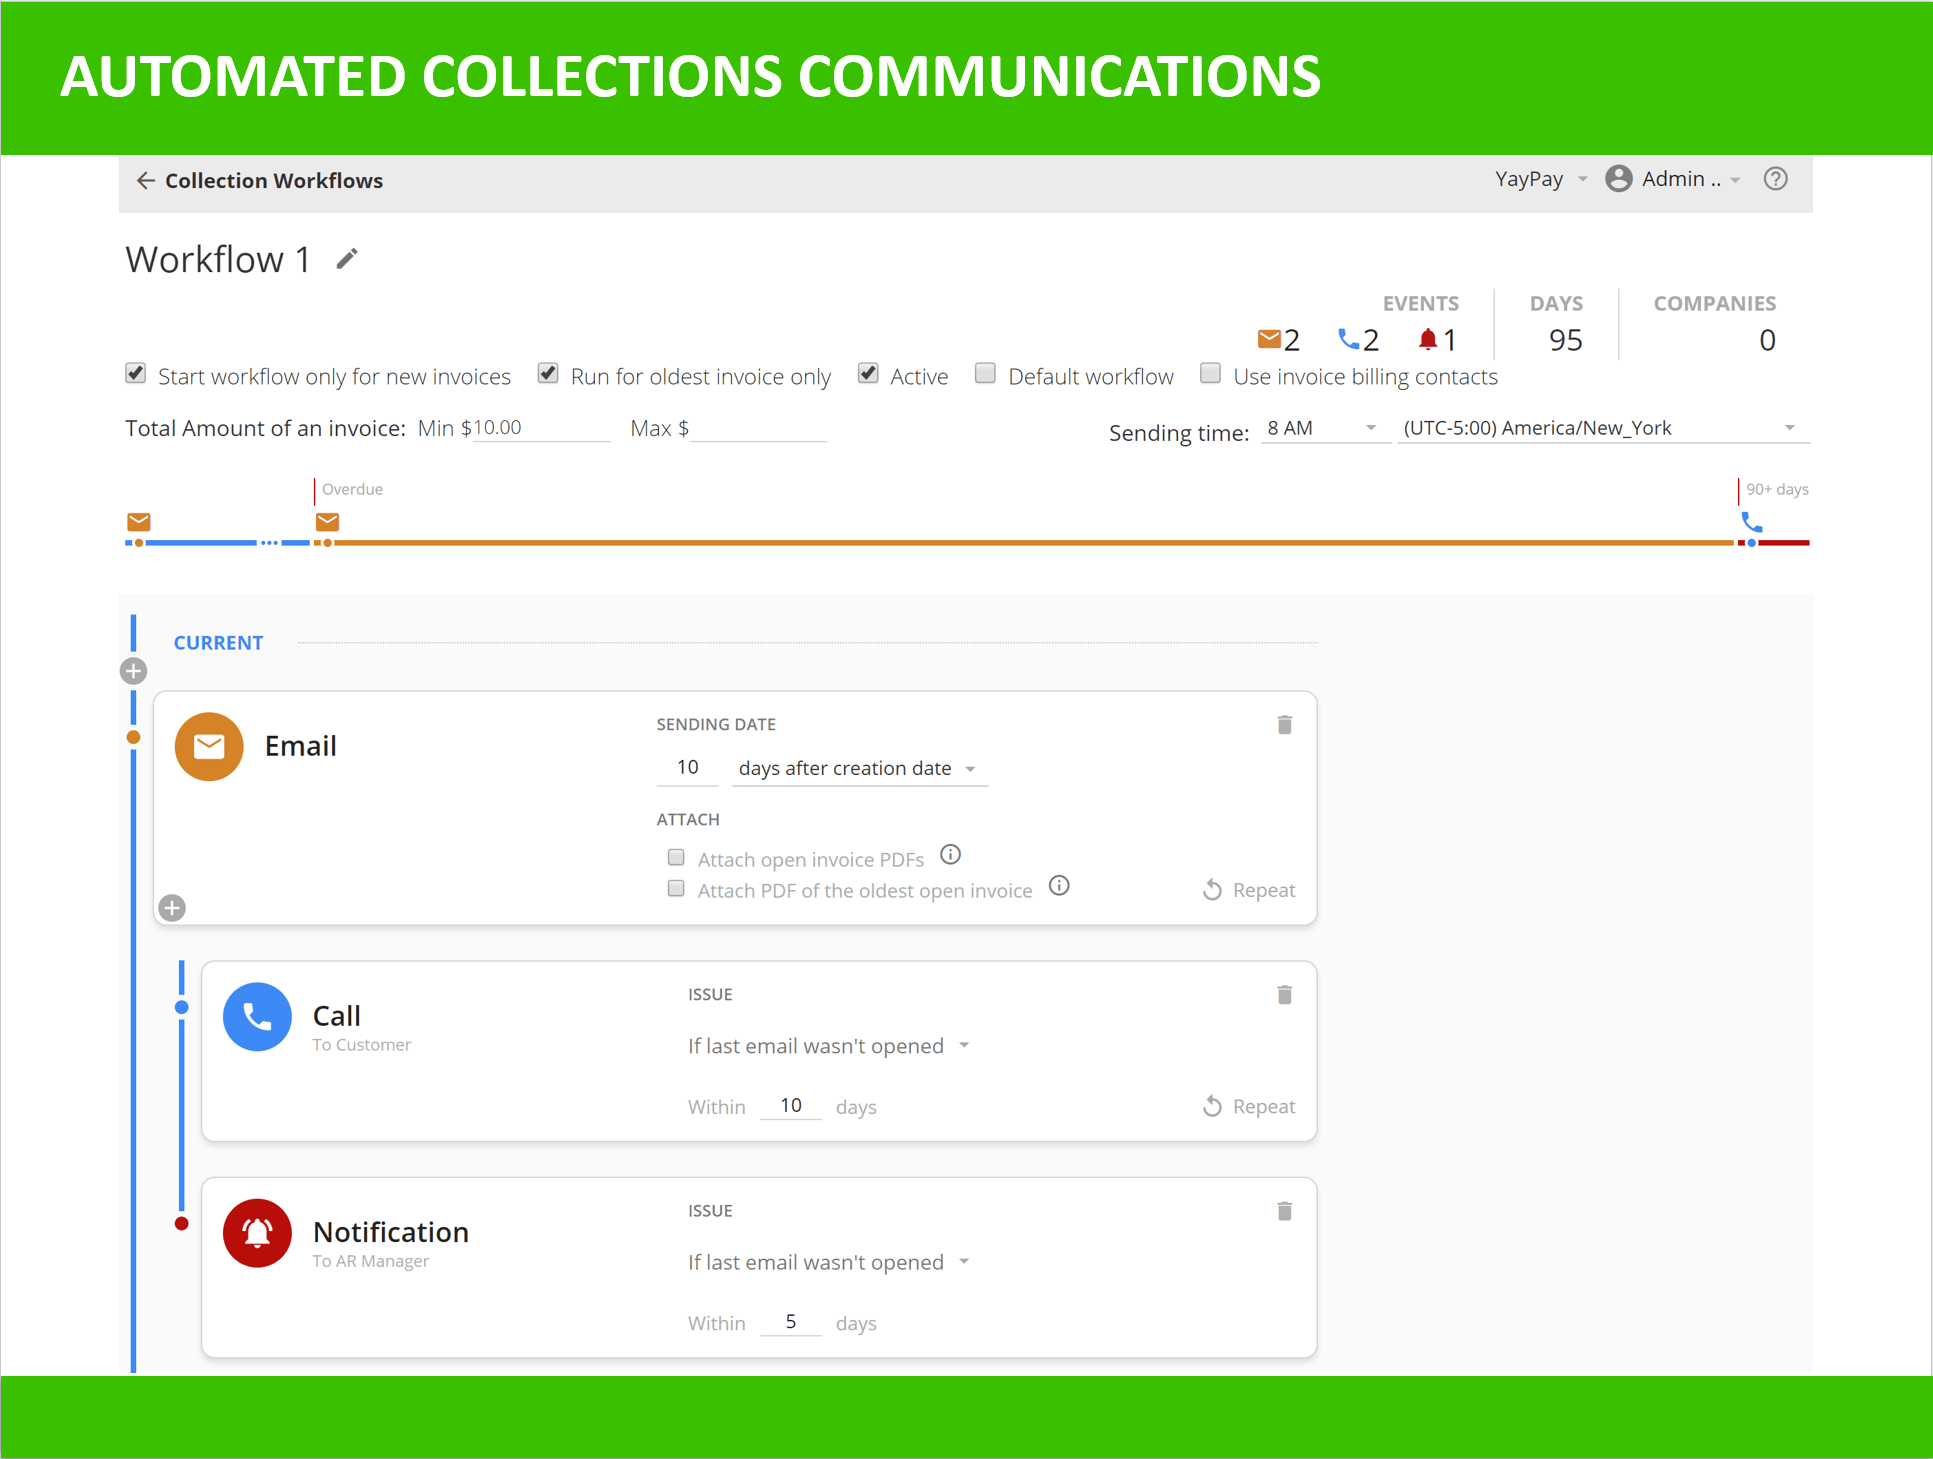 YayPay Collections Workflow 1